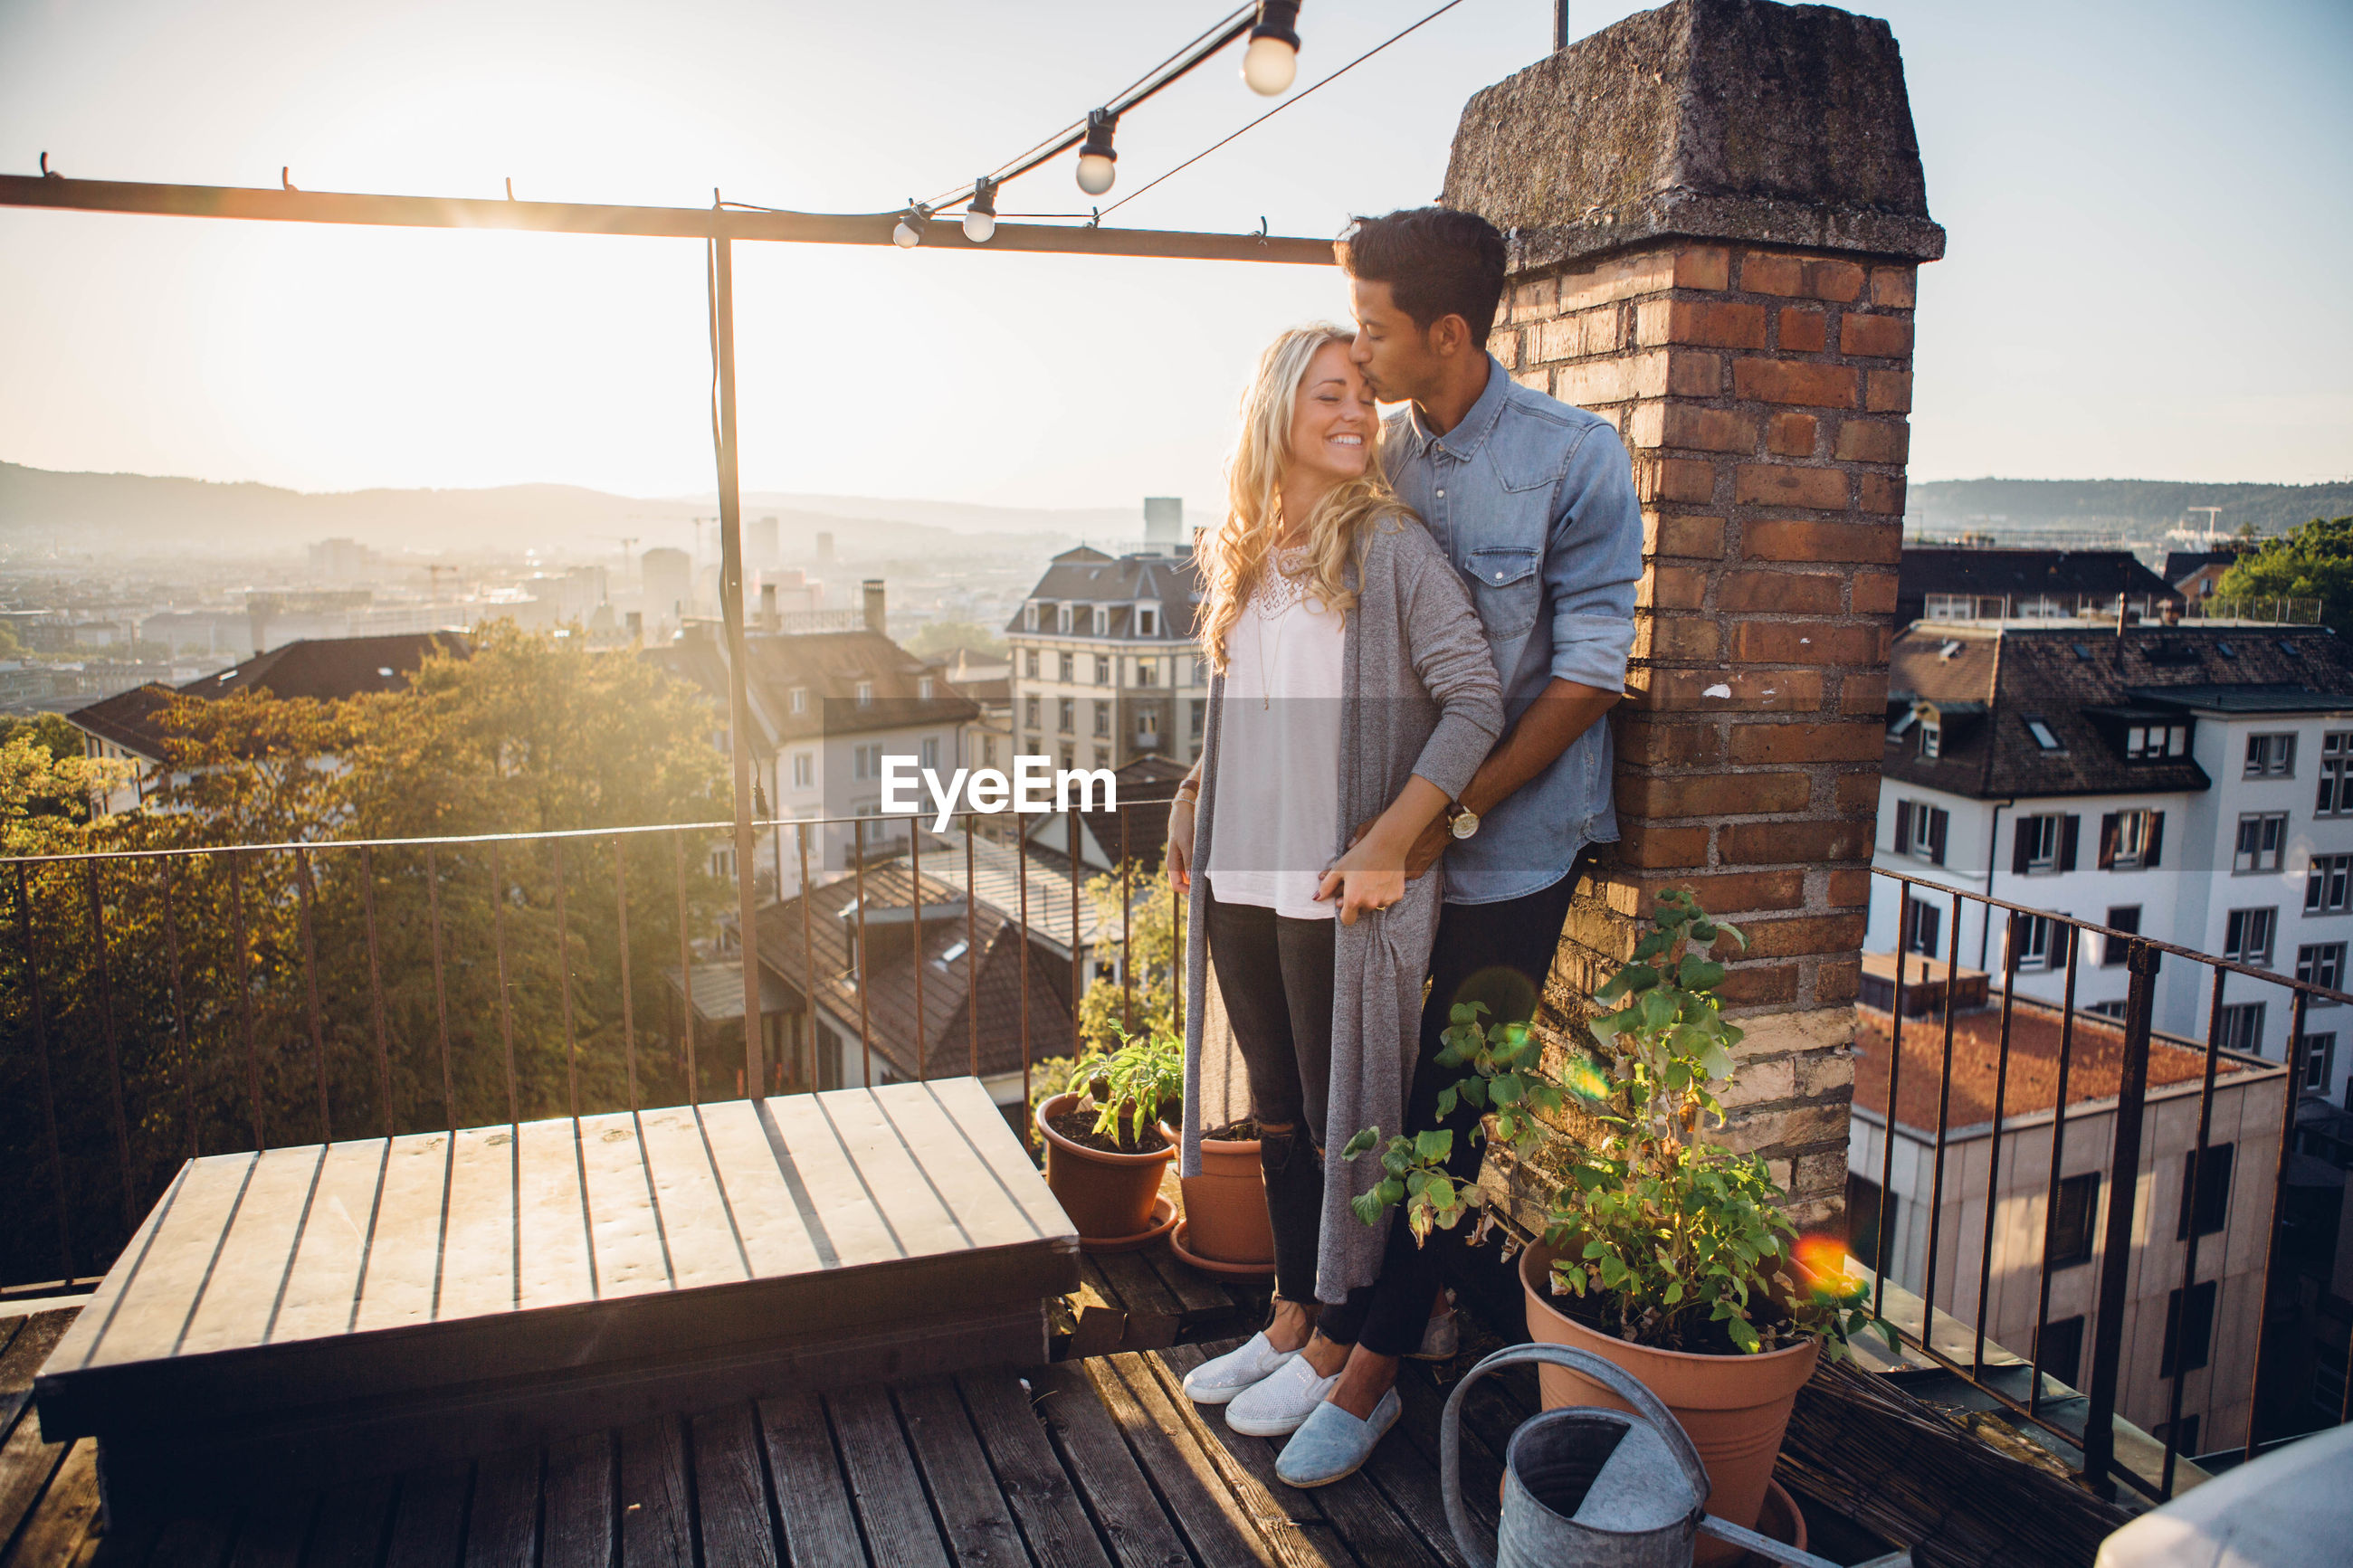 Couple standing at building terrace against sky